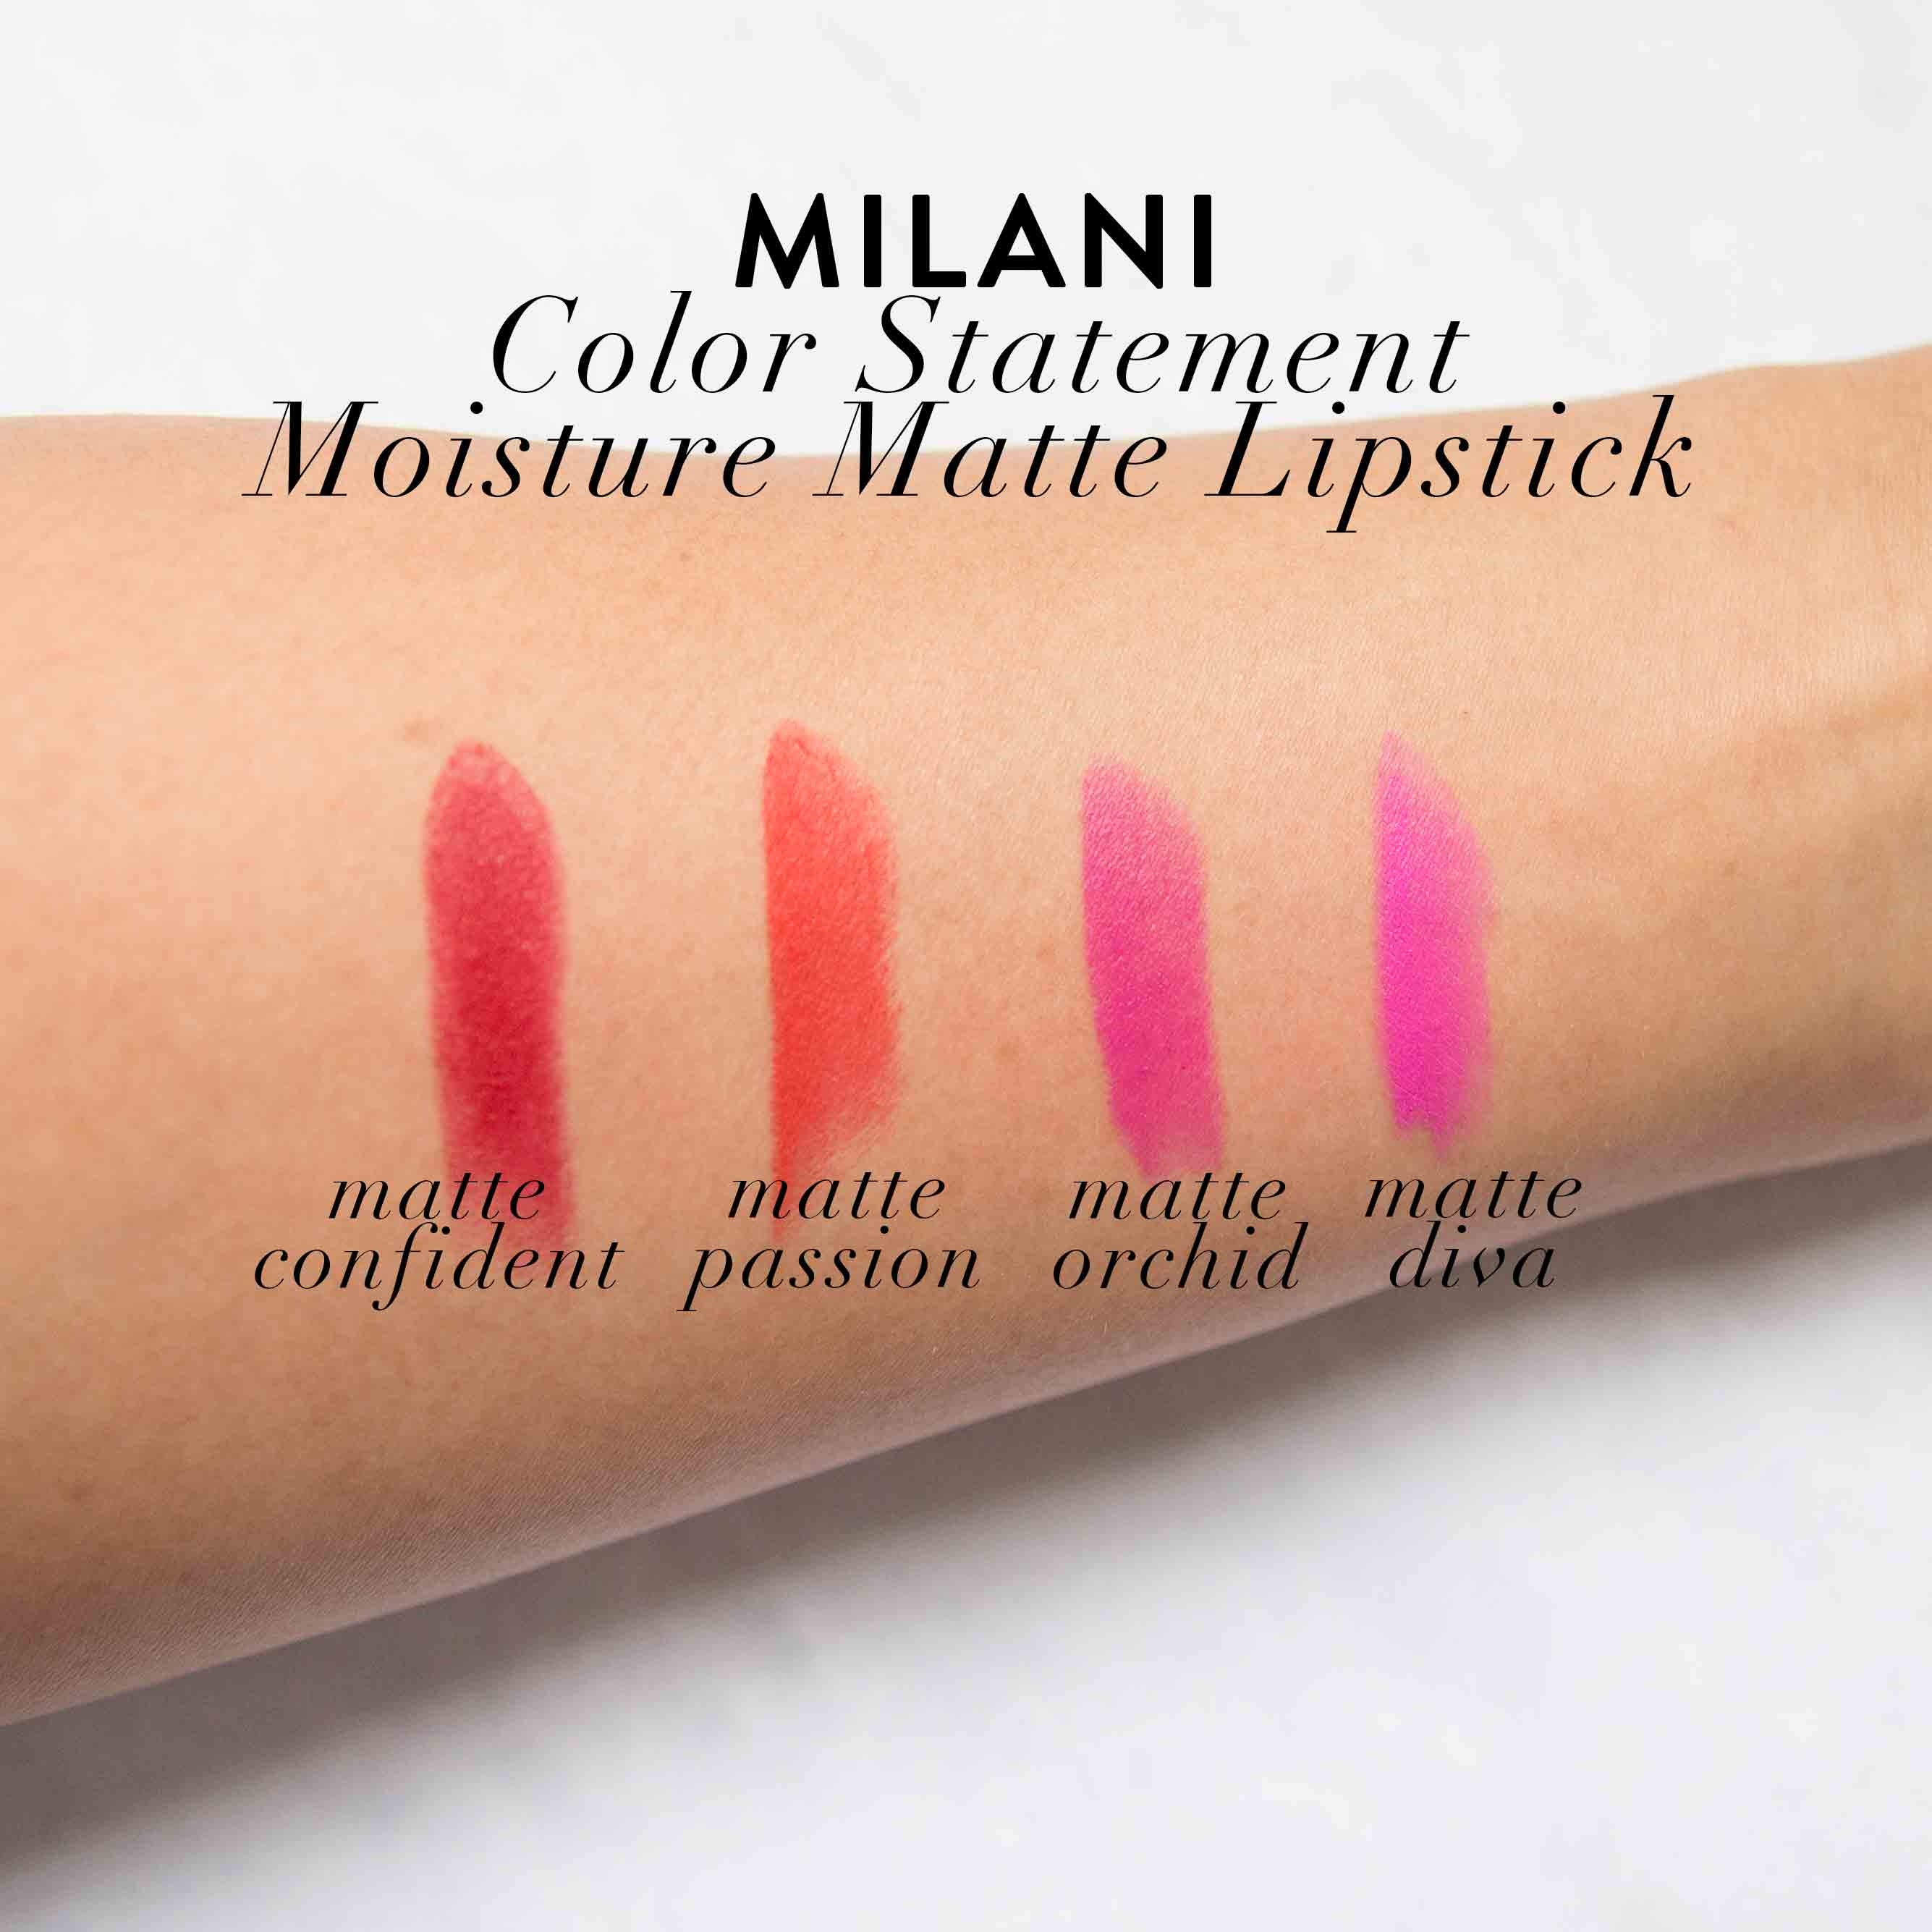 Milani Moisture Matte Lipstick Swatches Review